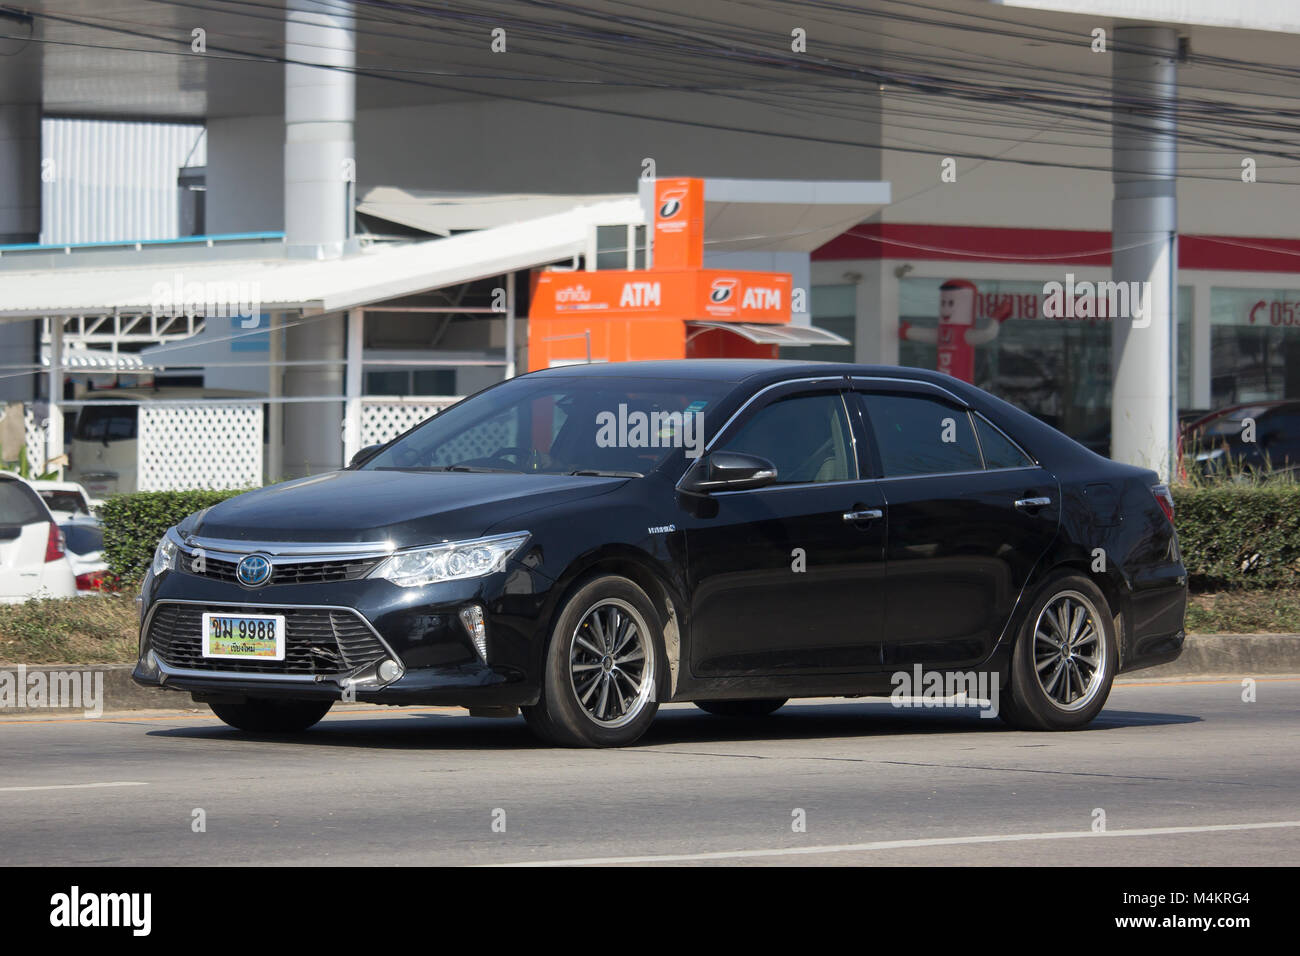 all new camry 2018 thailand tanduk depan grand veloz chiang mai january 16 private car toyota on road no 1001 8 km from chiangmai business area